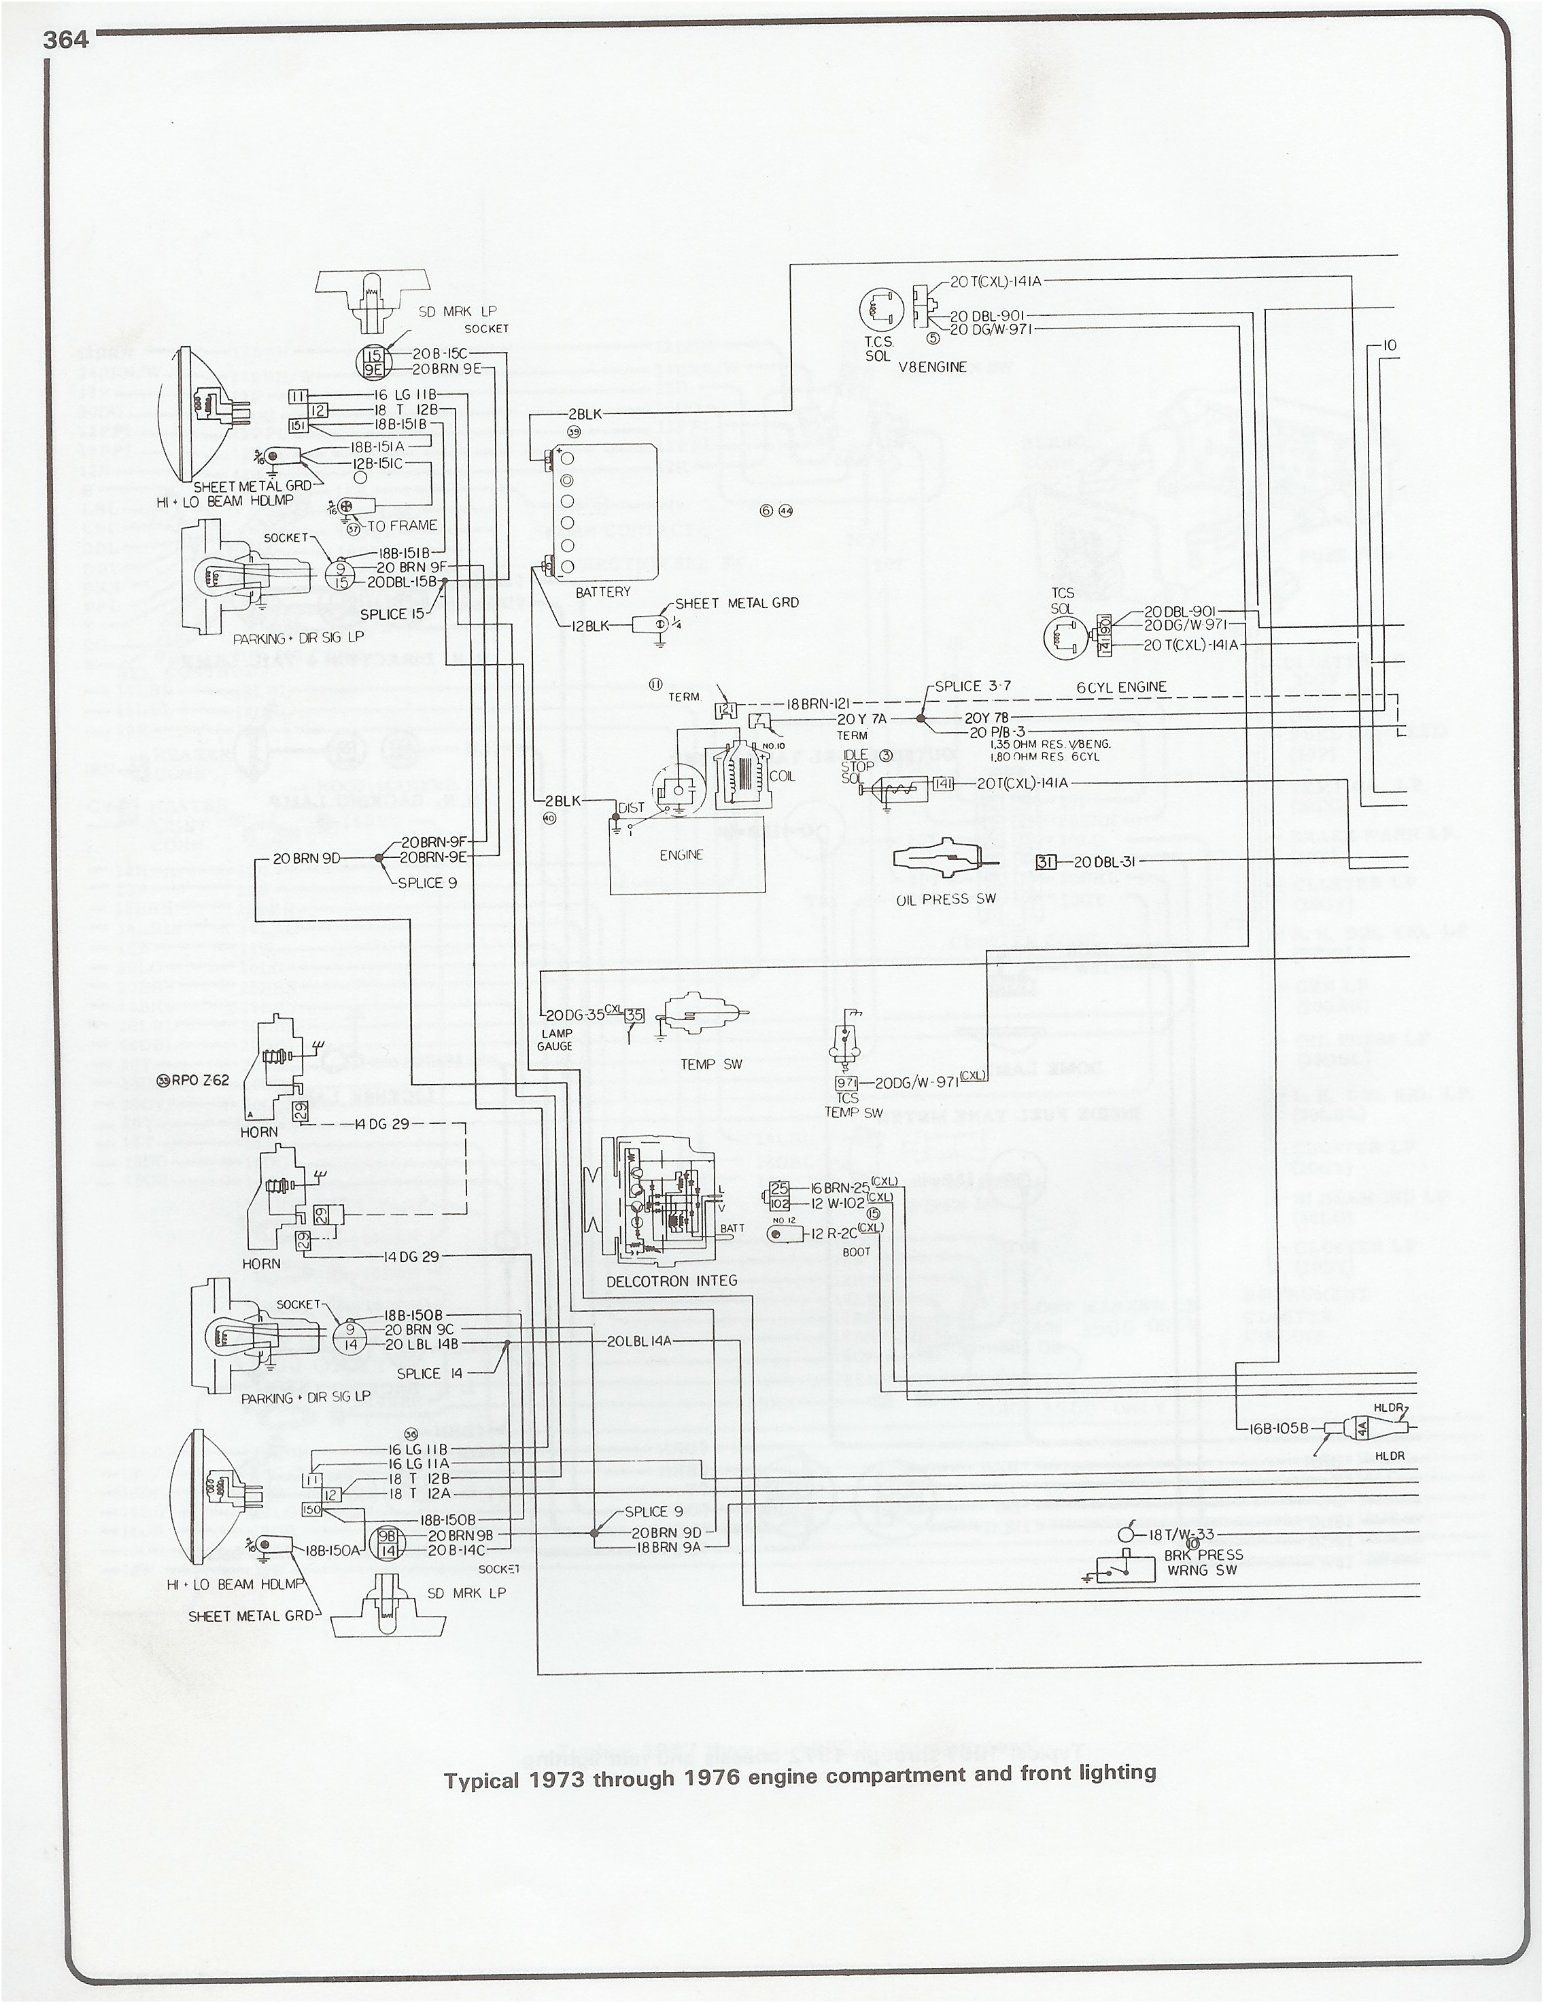 small resolution of wiring diagram 1973 1976 chevy pickup chevy wiring diagram